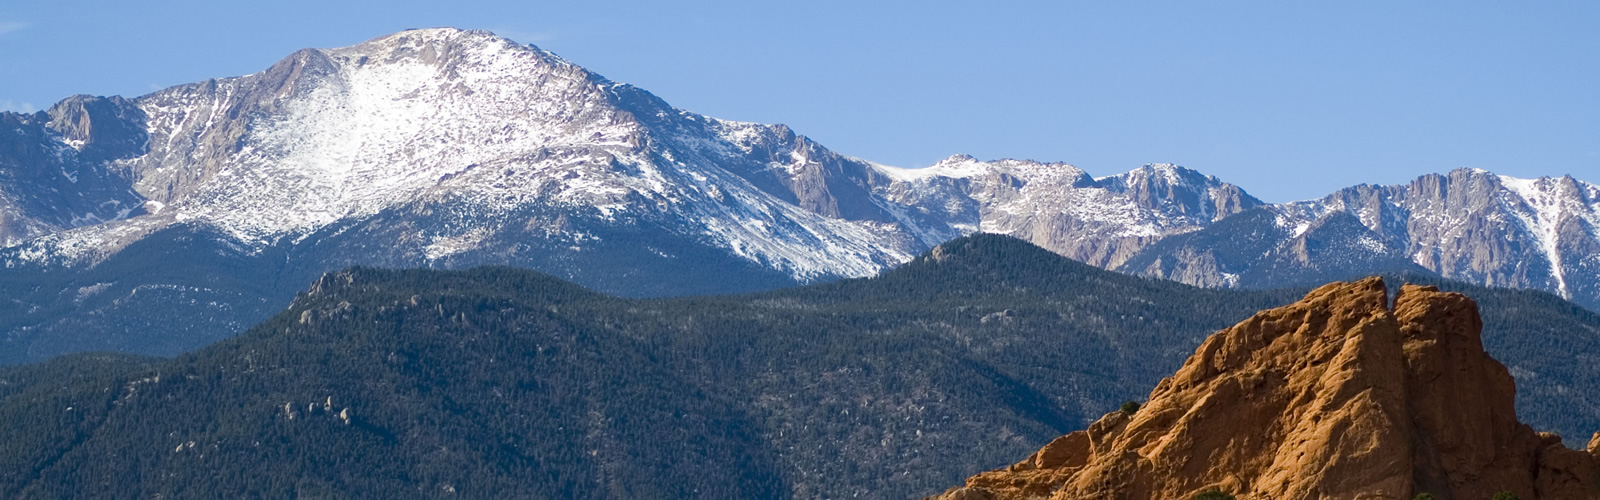 Pikes Peak Section